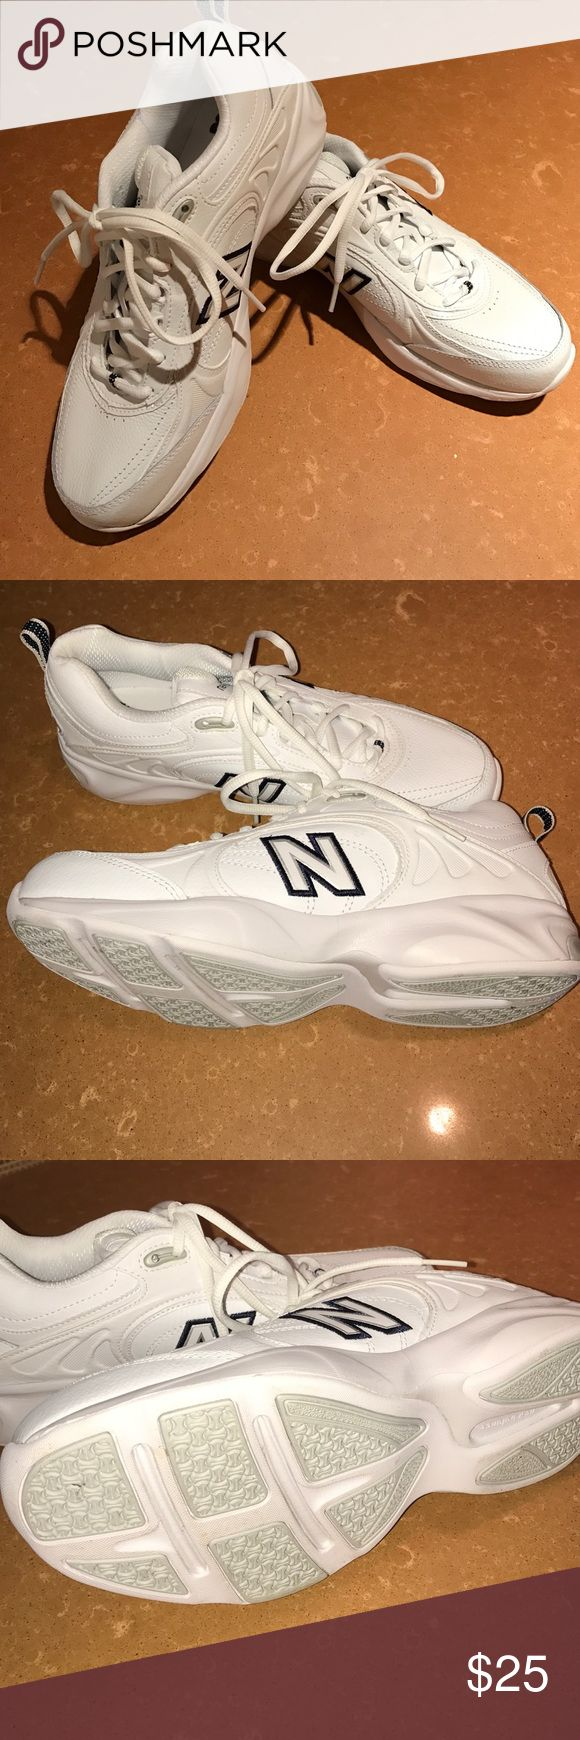 Gym shoes New Balance 623 all white athletic shoe.  Never worn. New Balance Shoes Athletic Shoes